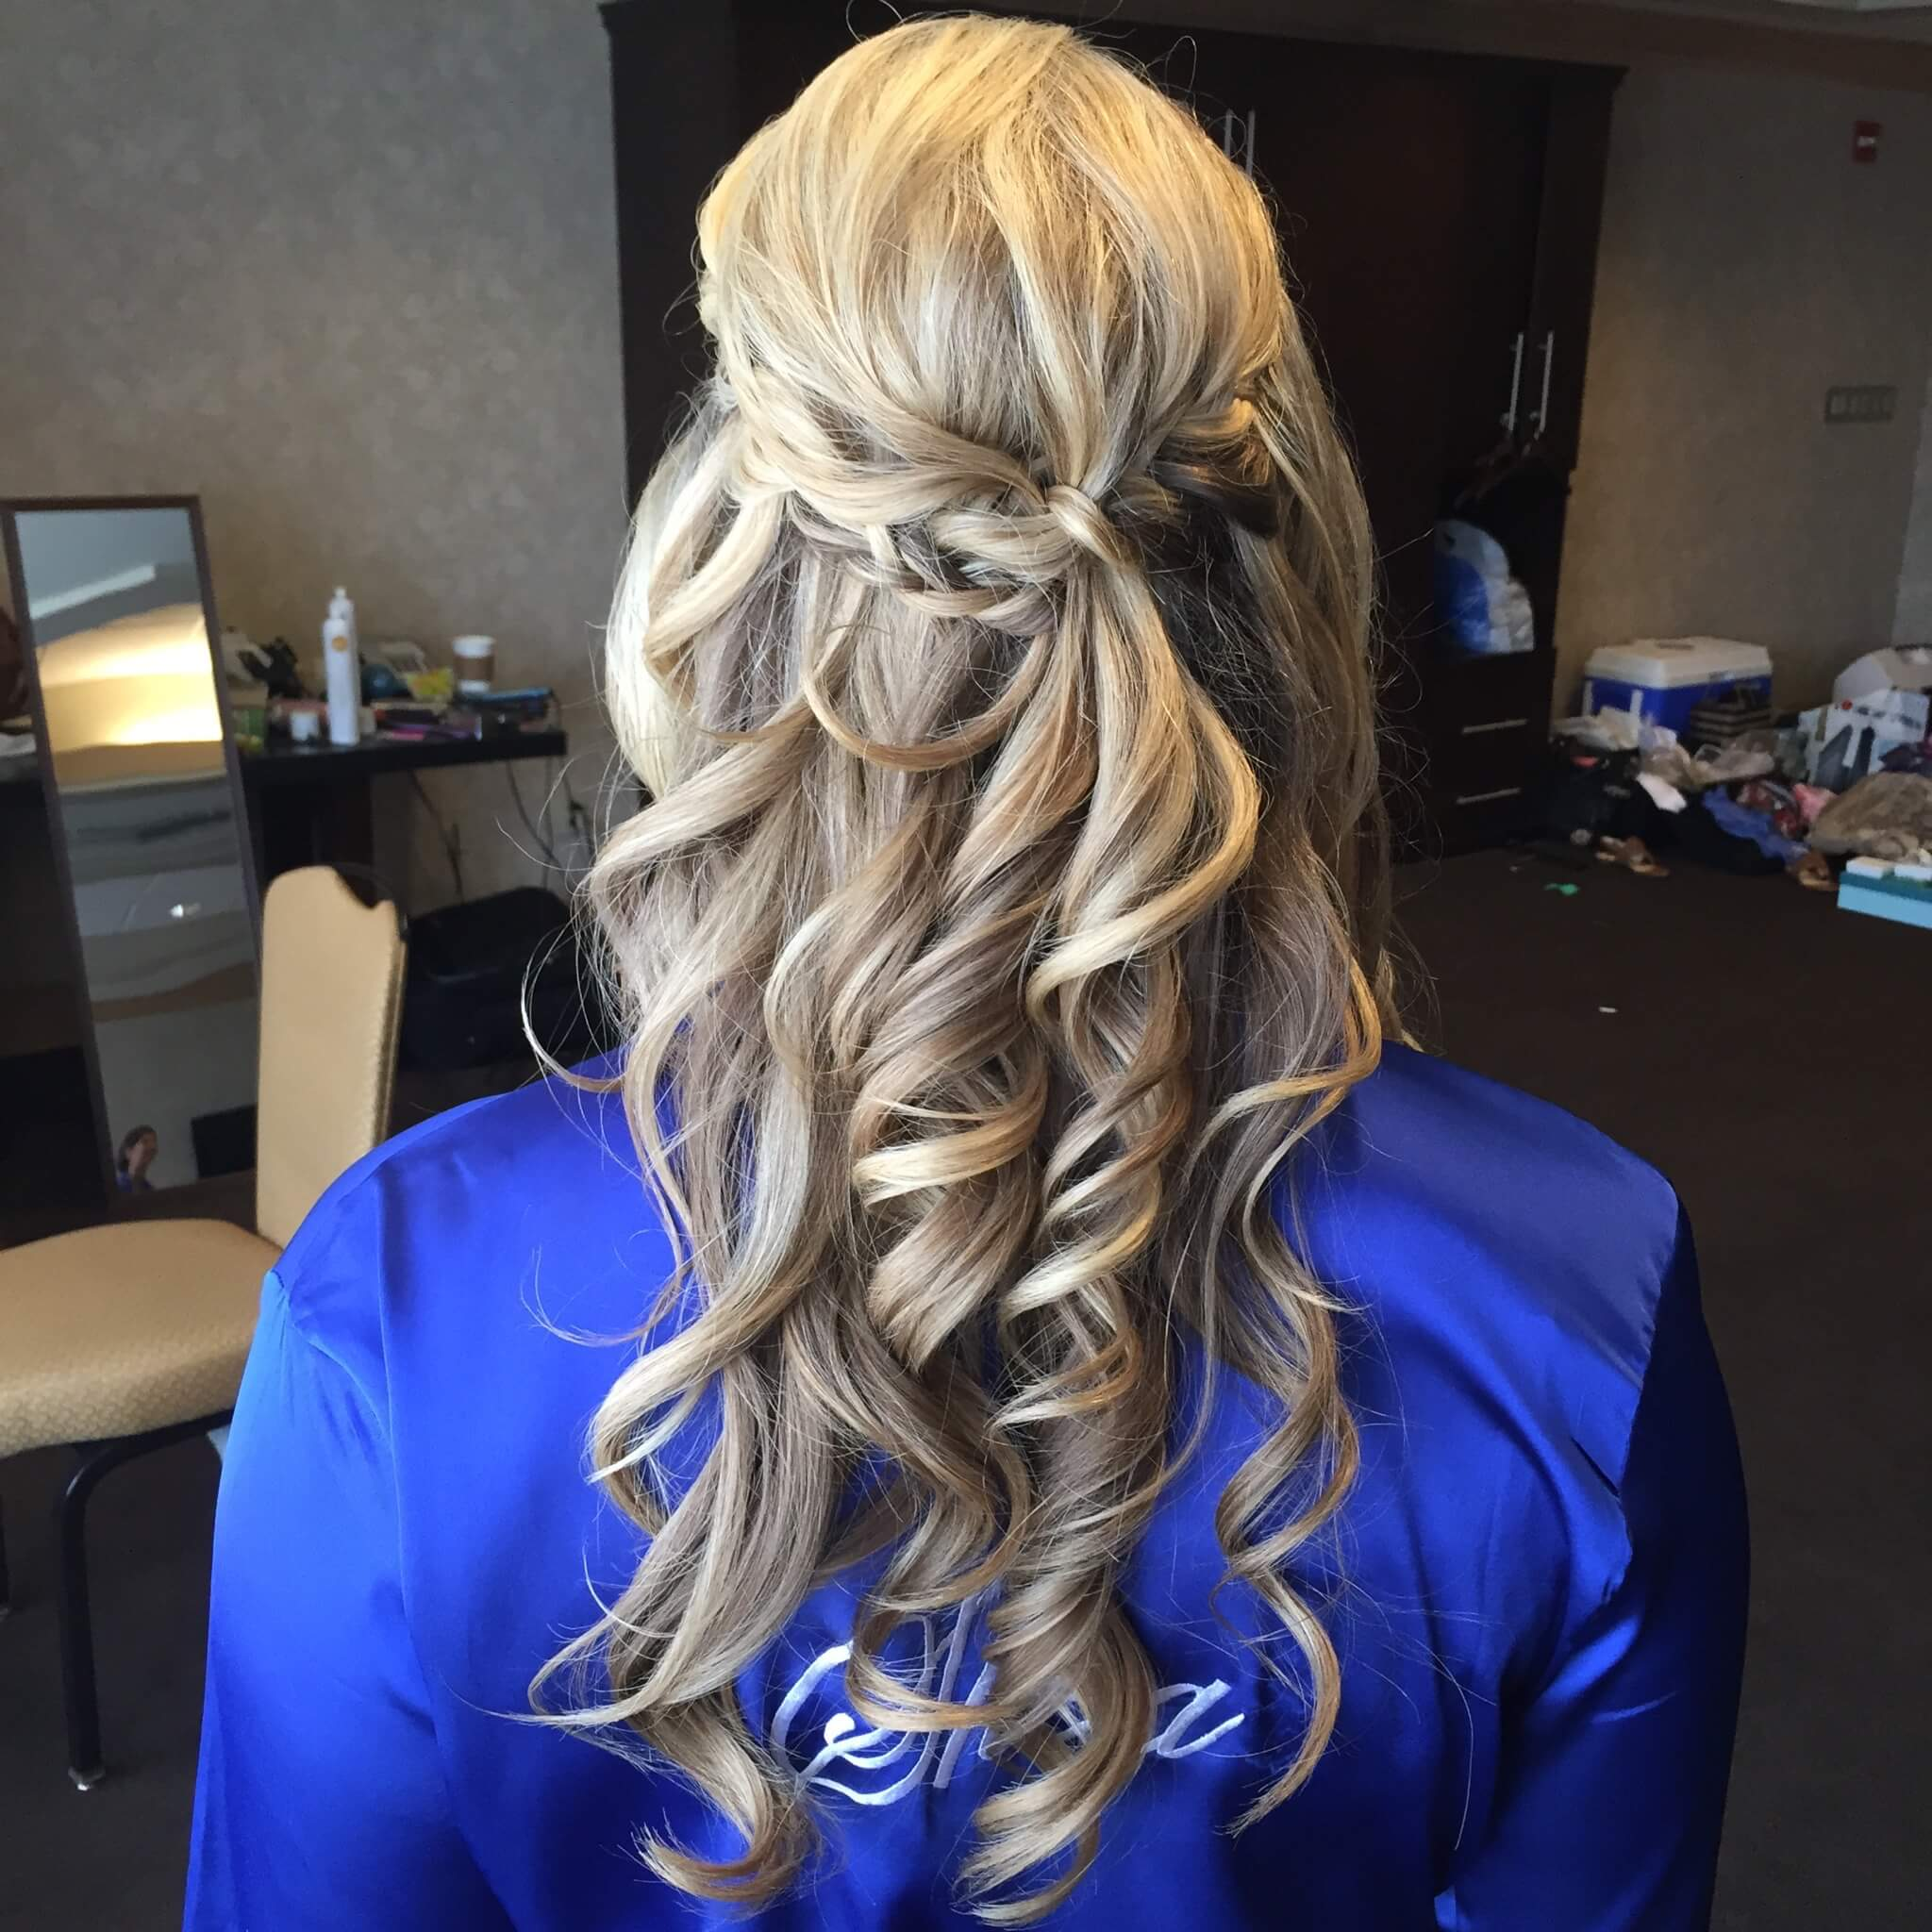 hair-salon-jacksonville-wedding-hairstyles-99-04